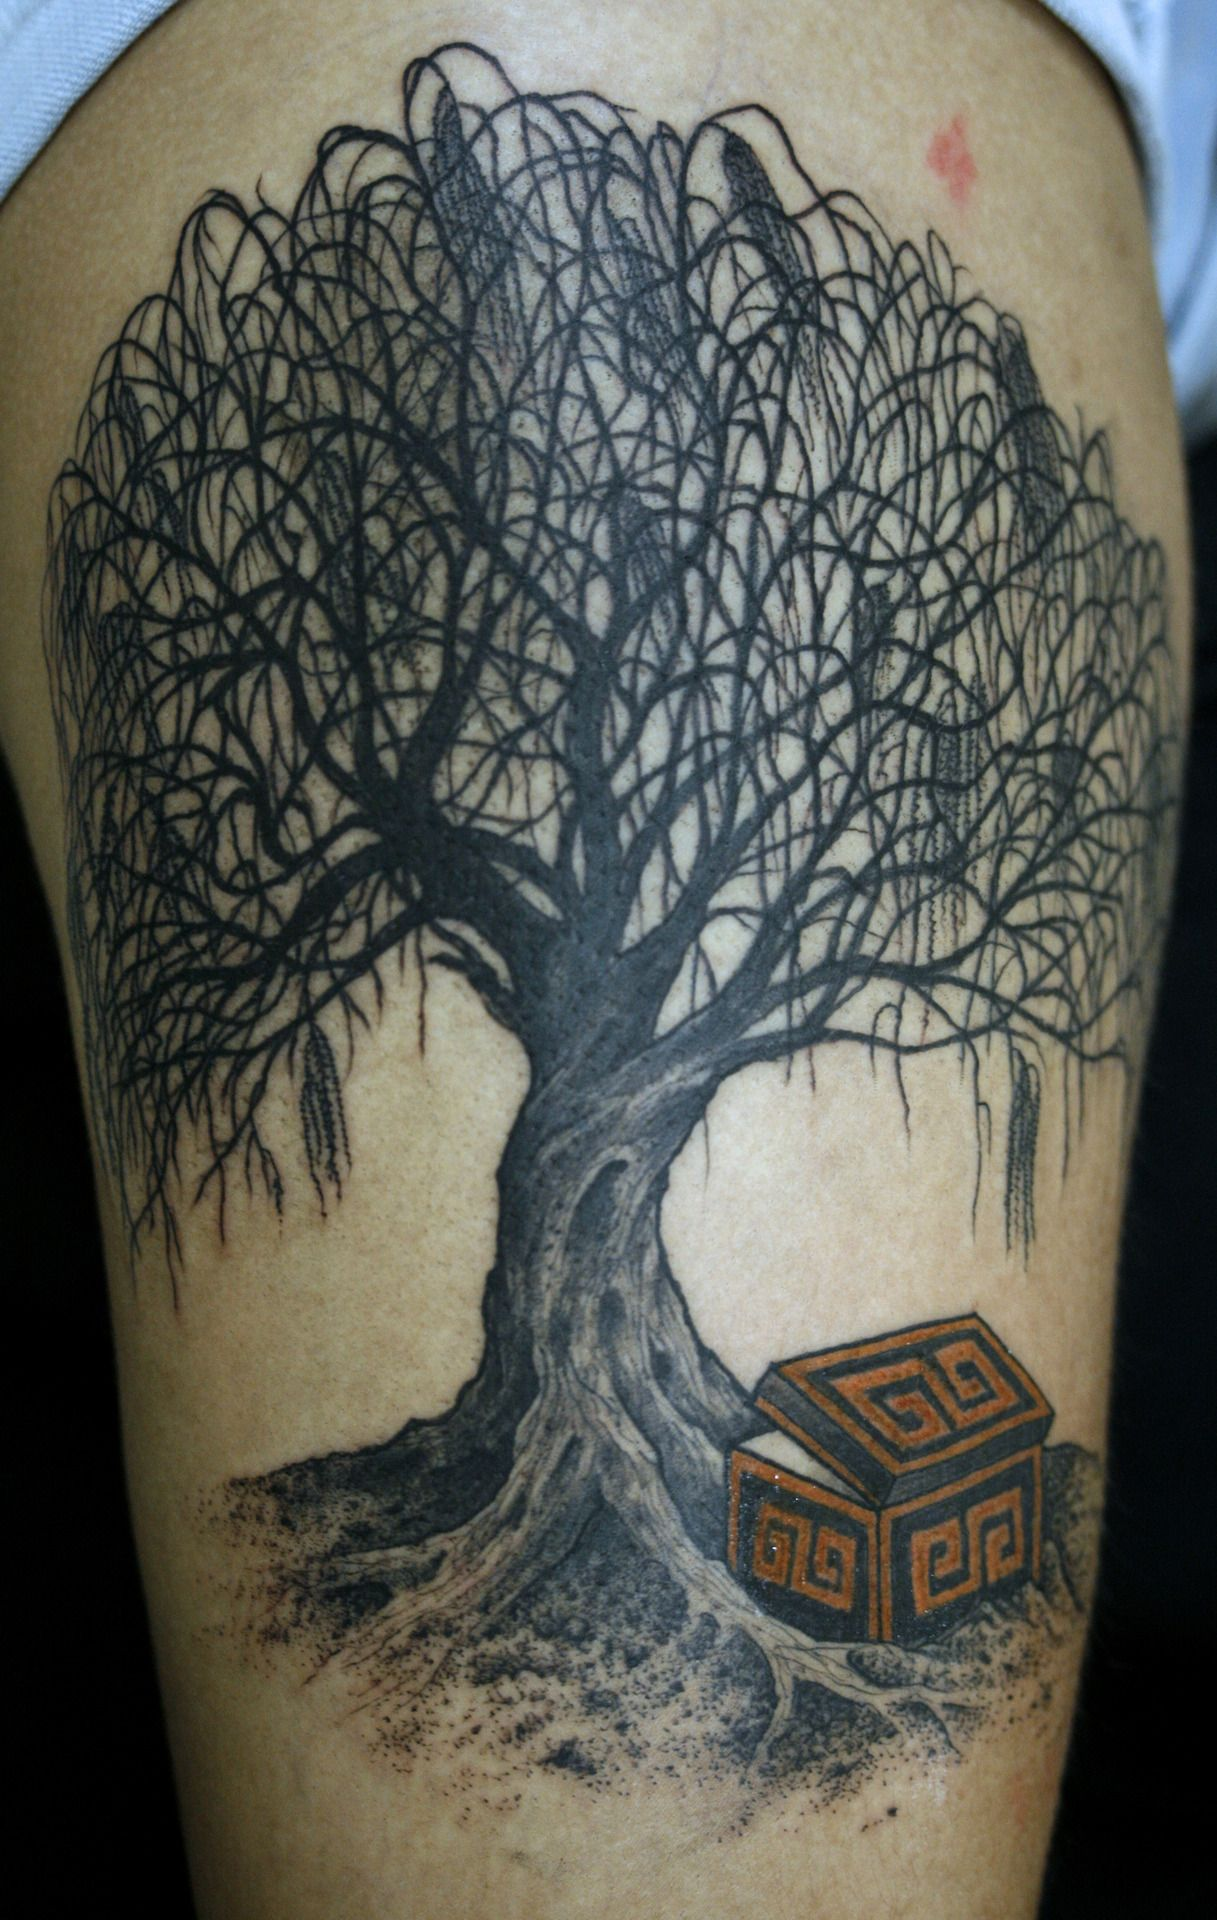 76 tree tattoos ideas to show your love for nature willow tree tattoos tattoo and tatting. Black Bedroom Furniture Sets. Home Design Ideas